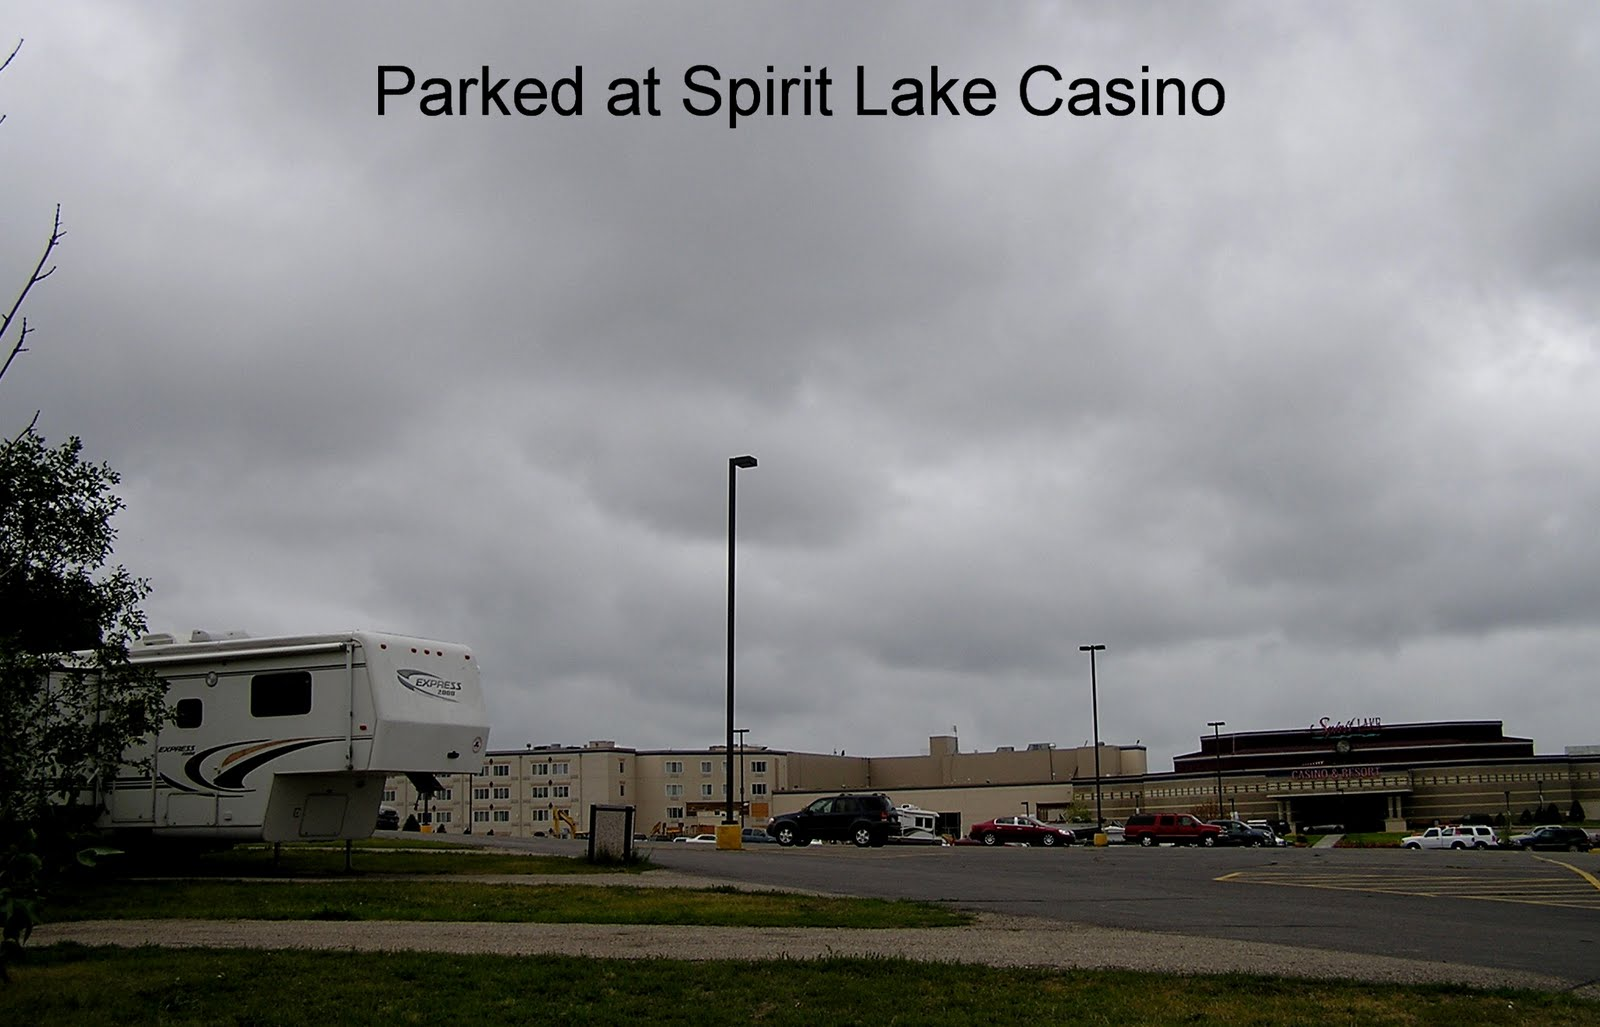 Devils Lake Nd >> On the Road in 2009 (continued): Spirit Lake Casino ...